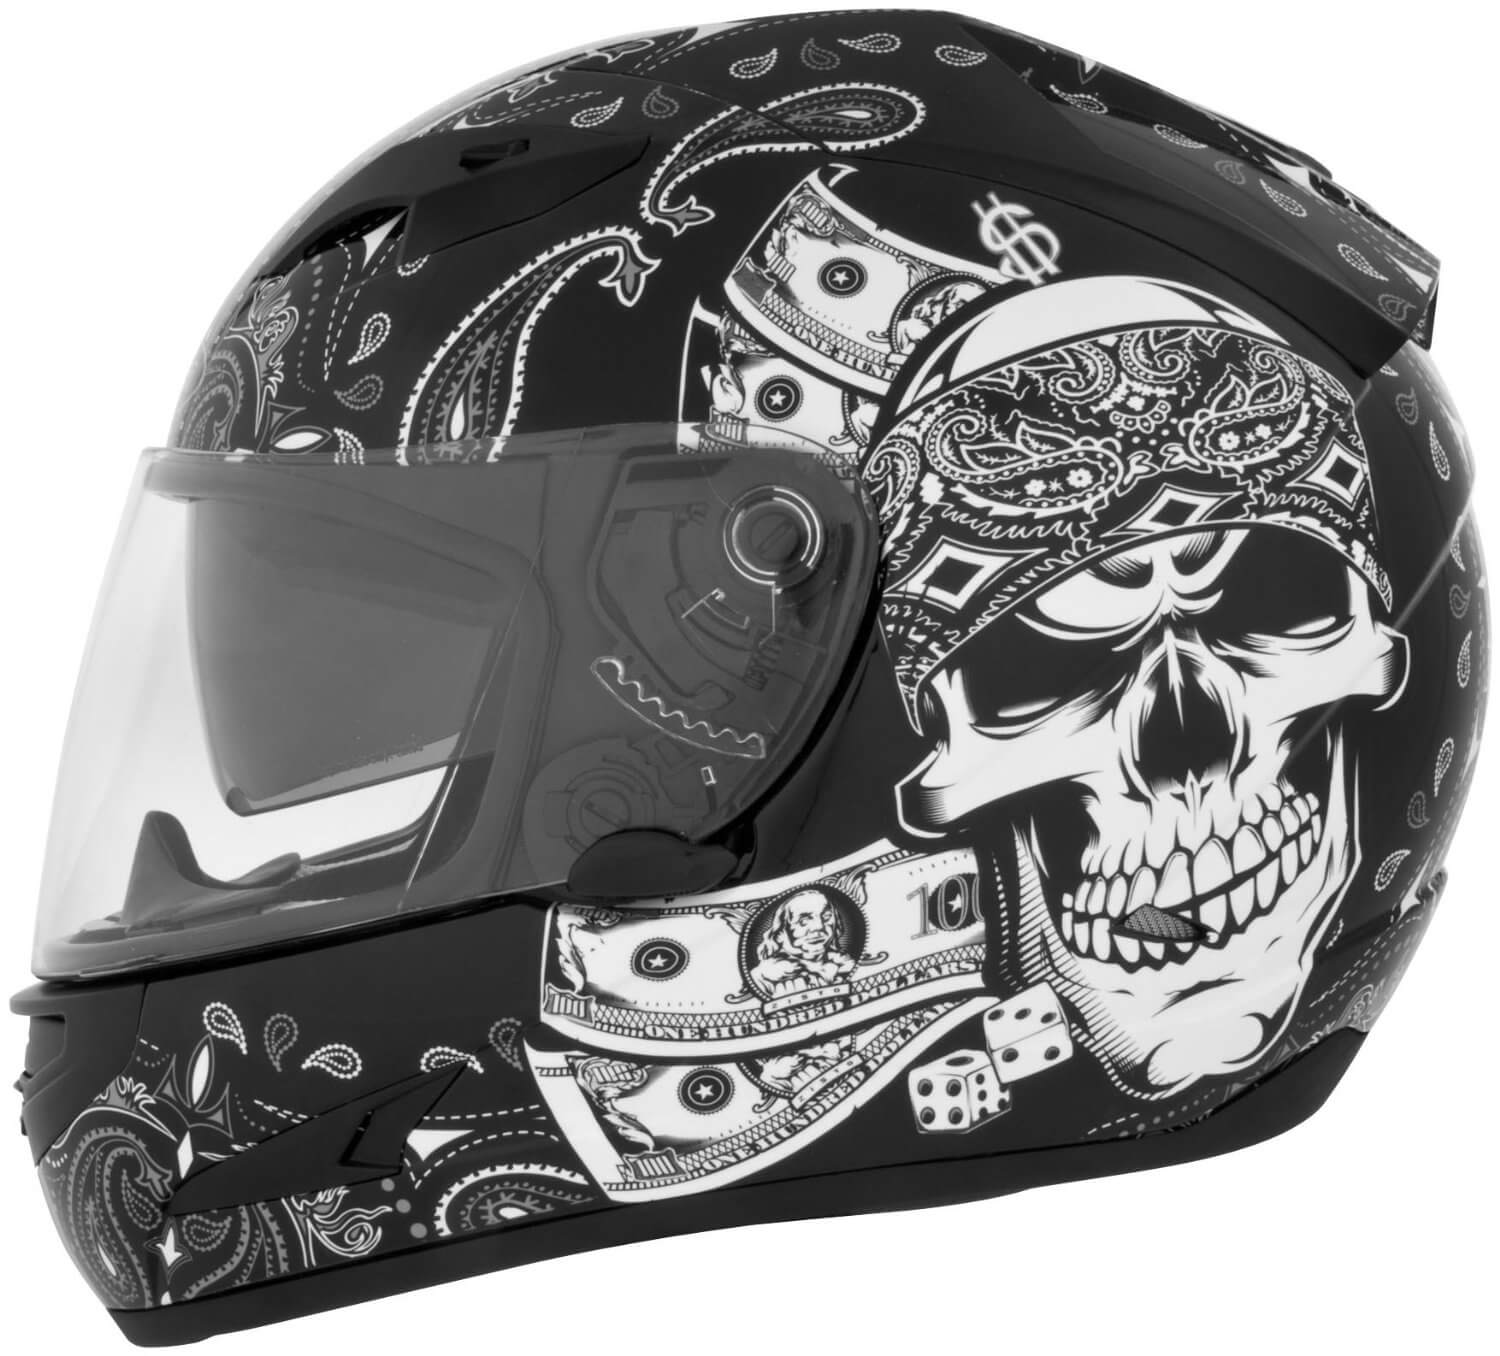 10 of the Wildest Skull Helmets in the Motorcycle World